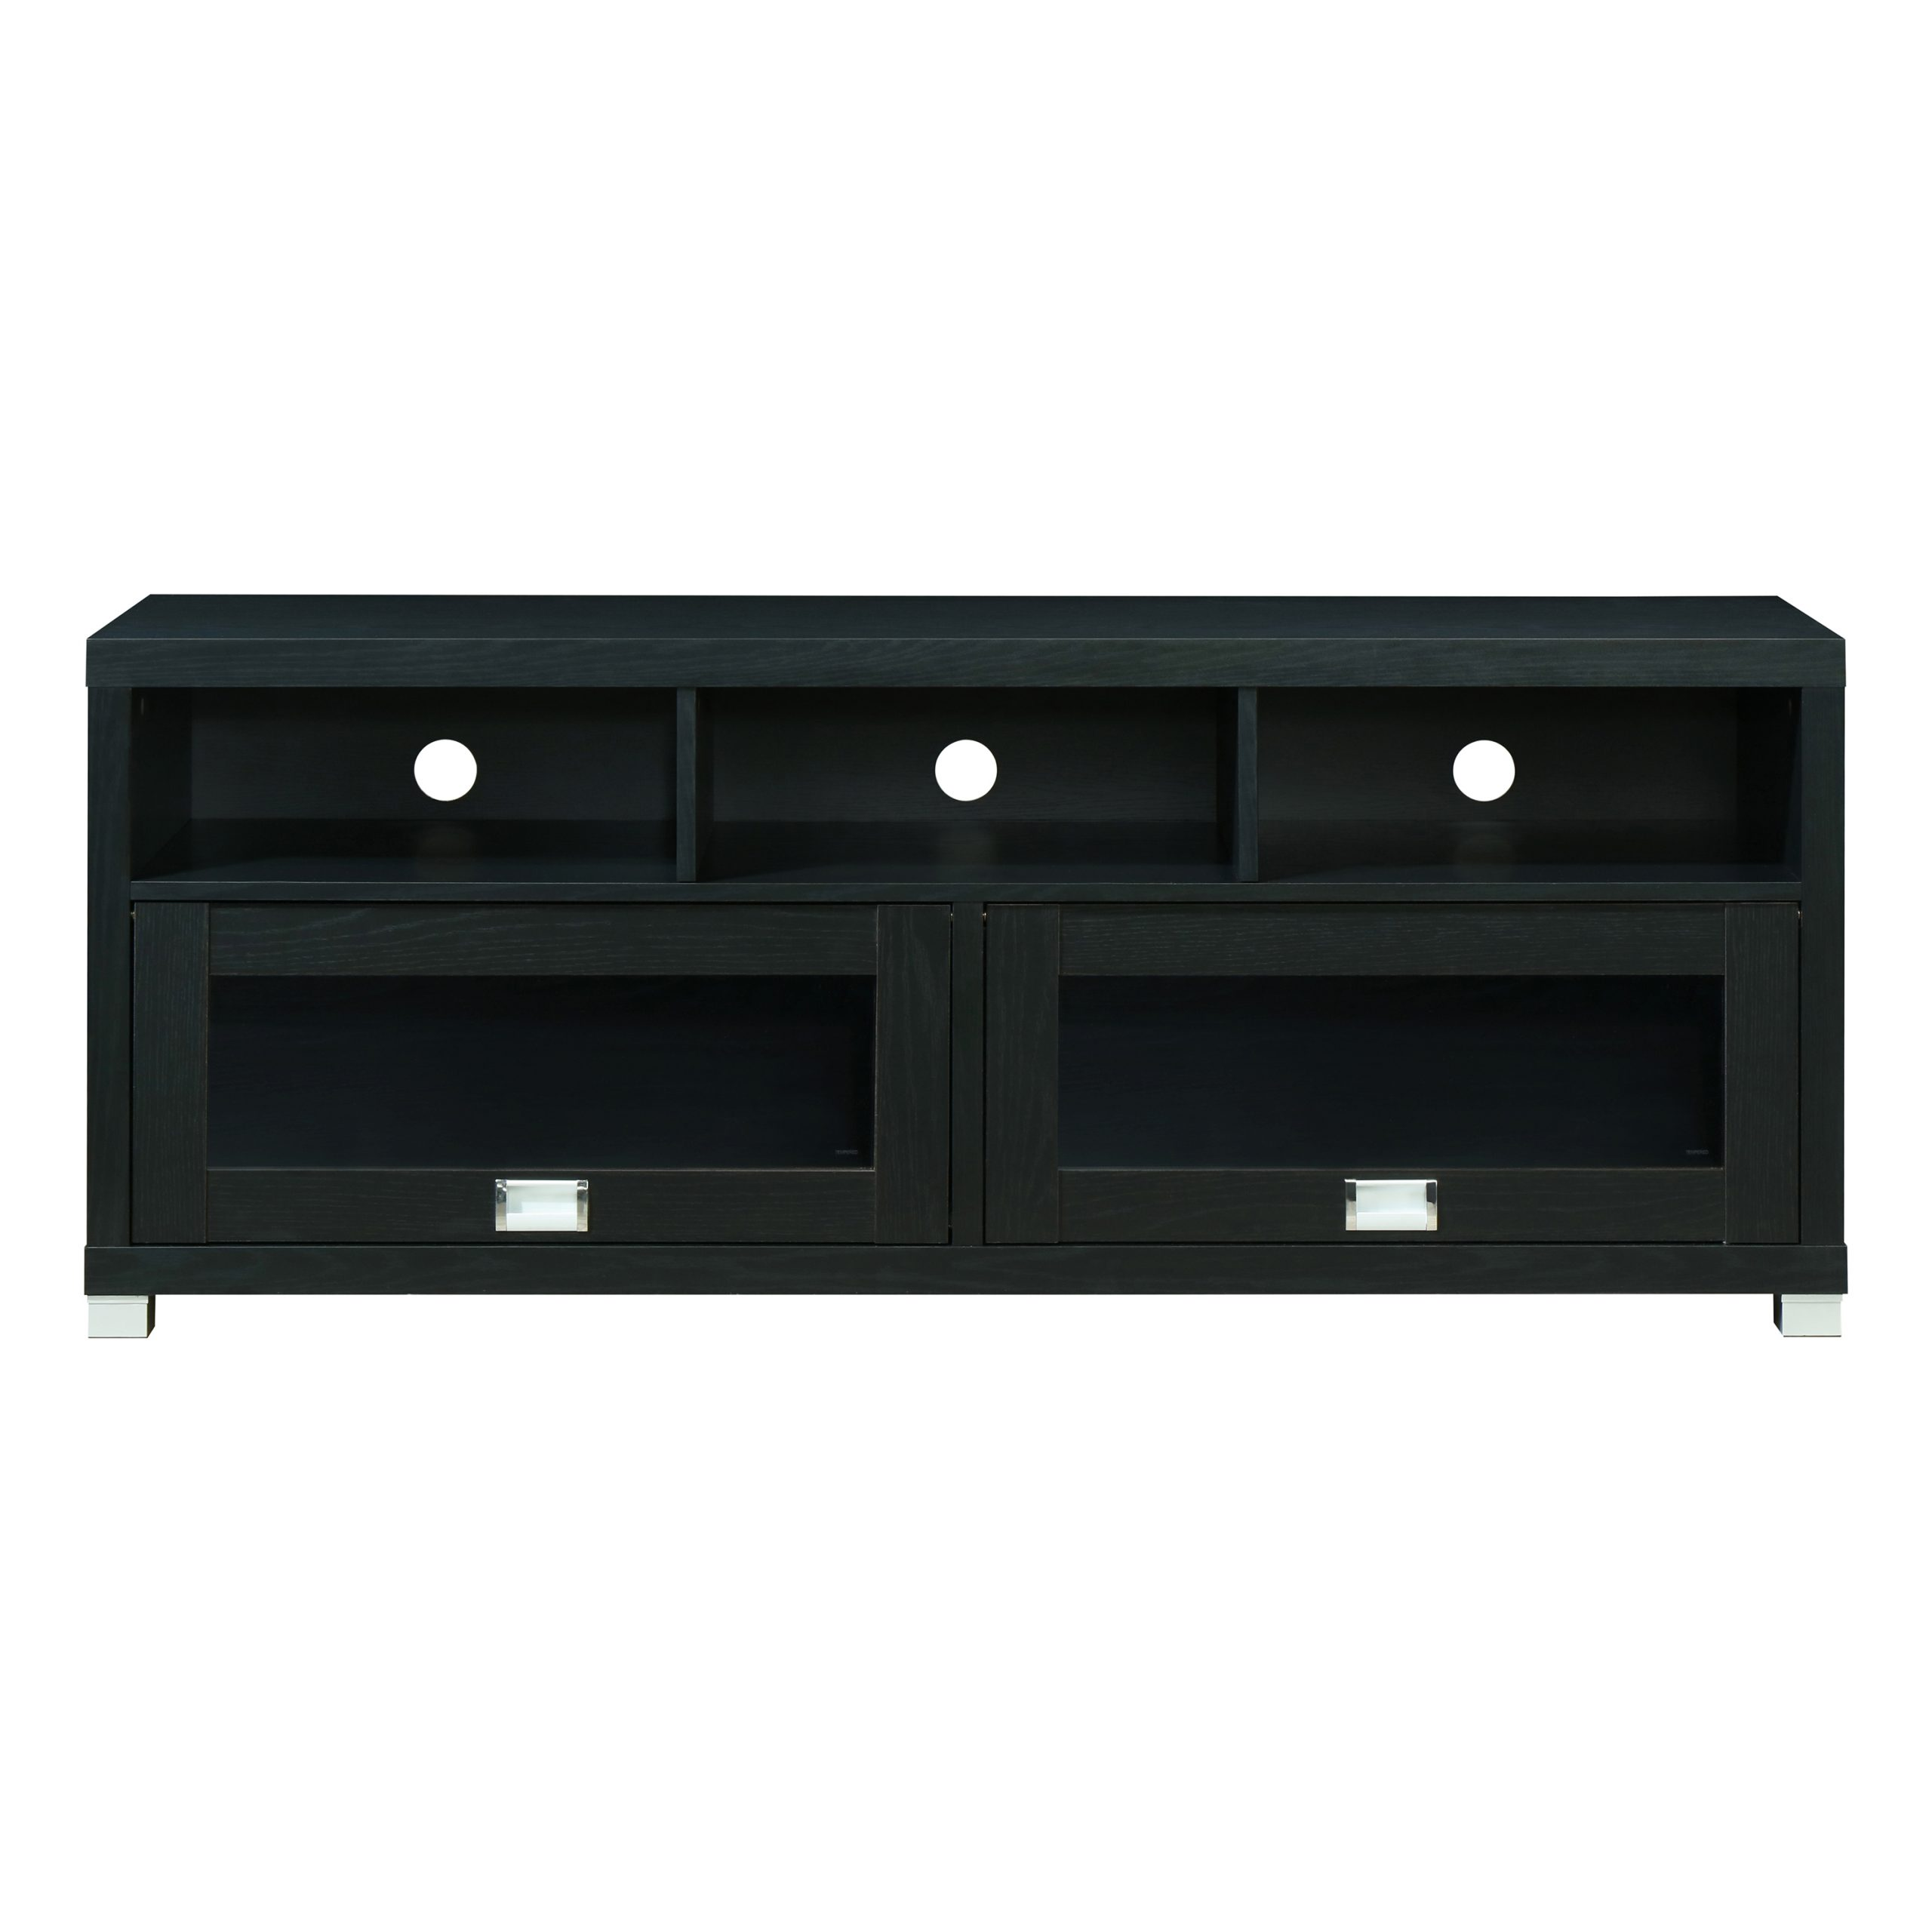 """Techni Mobili 58"""" Durbin Tv Stand For Tvs Up To 75"""",black Regarding Jace Tv Stands For Tvs Up To 58"""" (View 10 of 15)"""